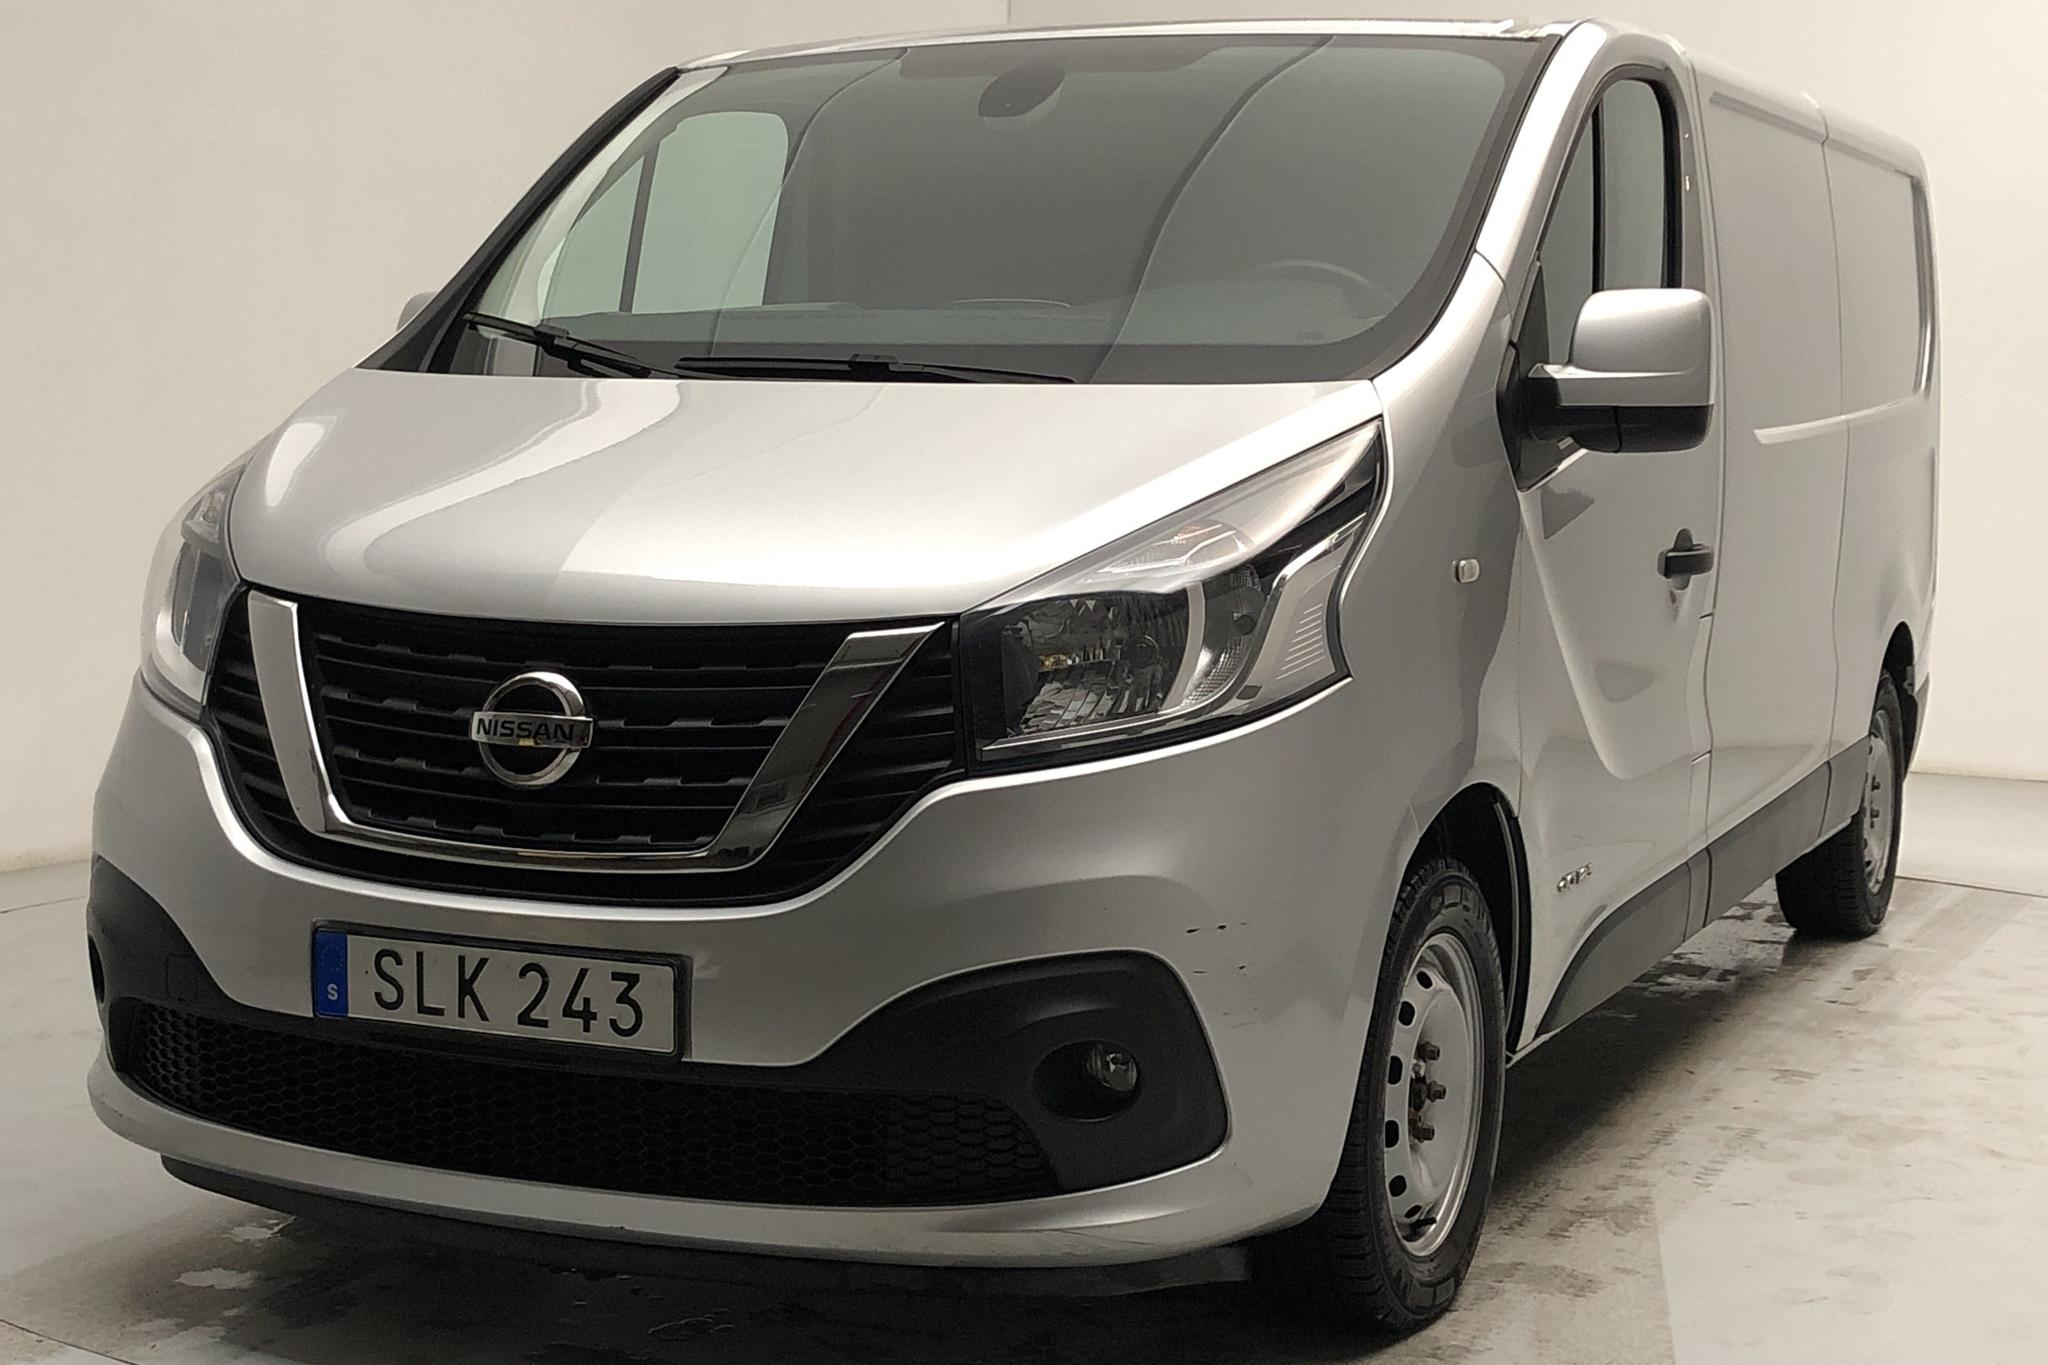 Nissan NV300 1.6 dCi (125hk) - 61 110 km - Manual - silver - 2017